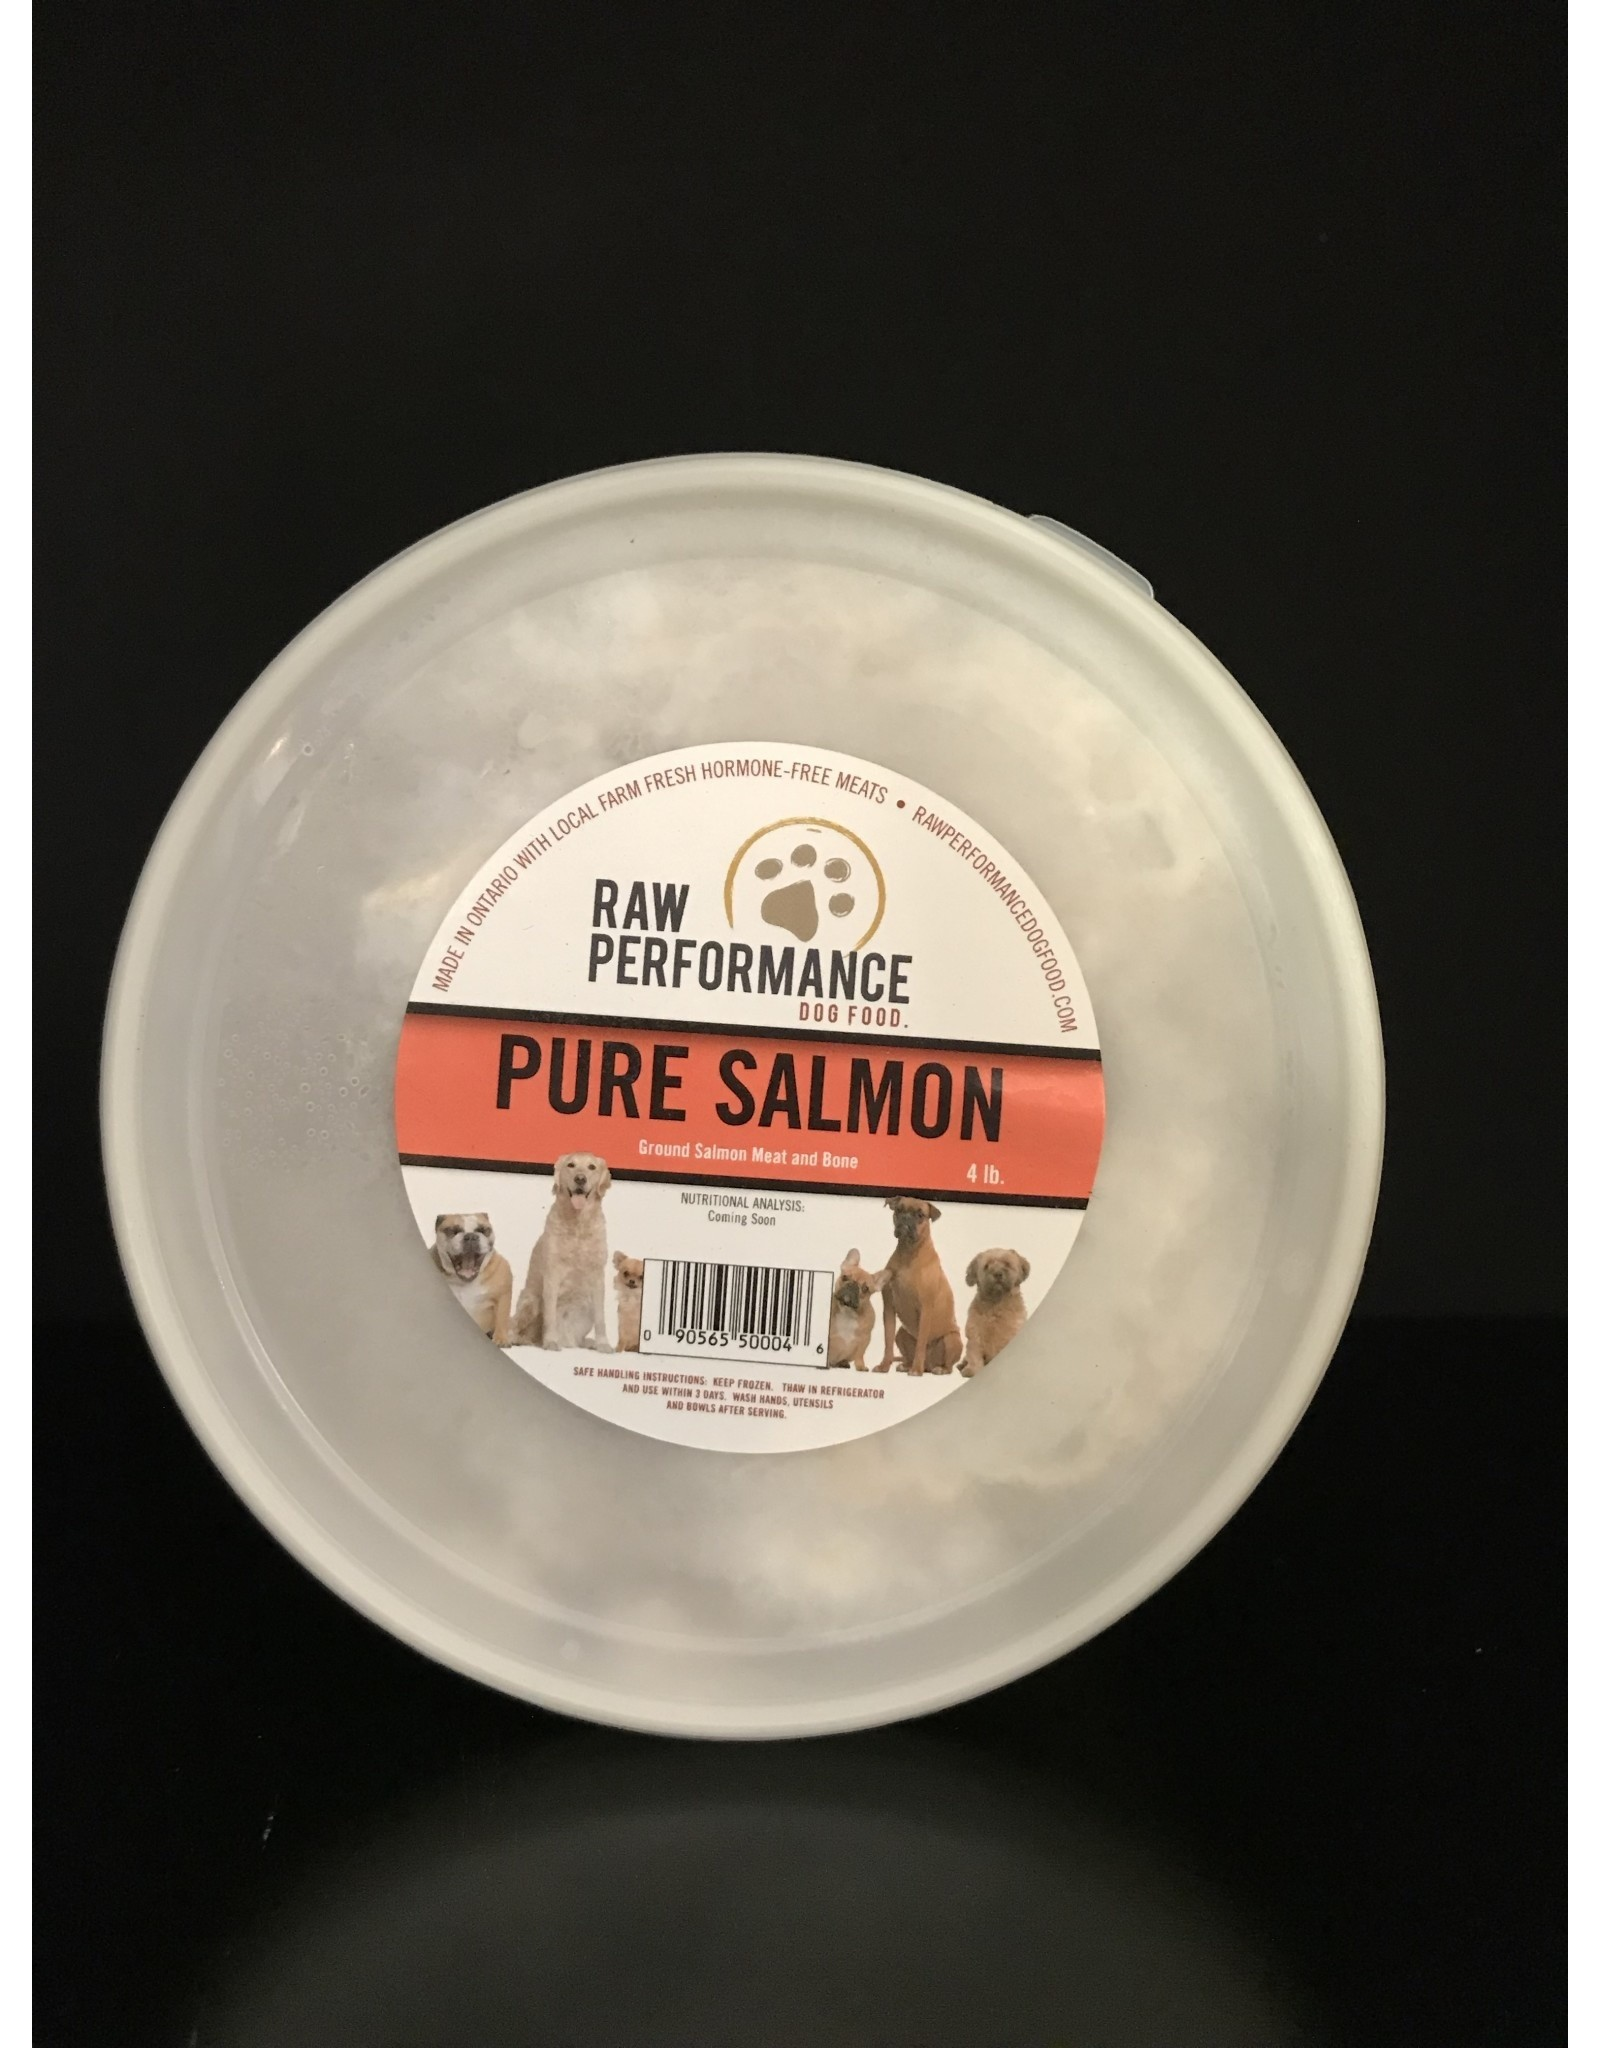 Raw Performance Raw Performance - Pure Salmon - 4LB